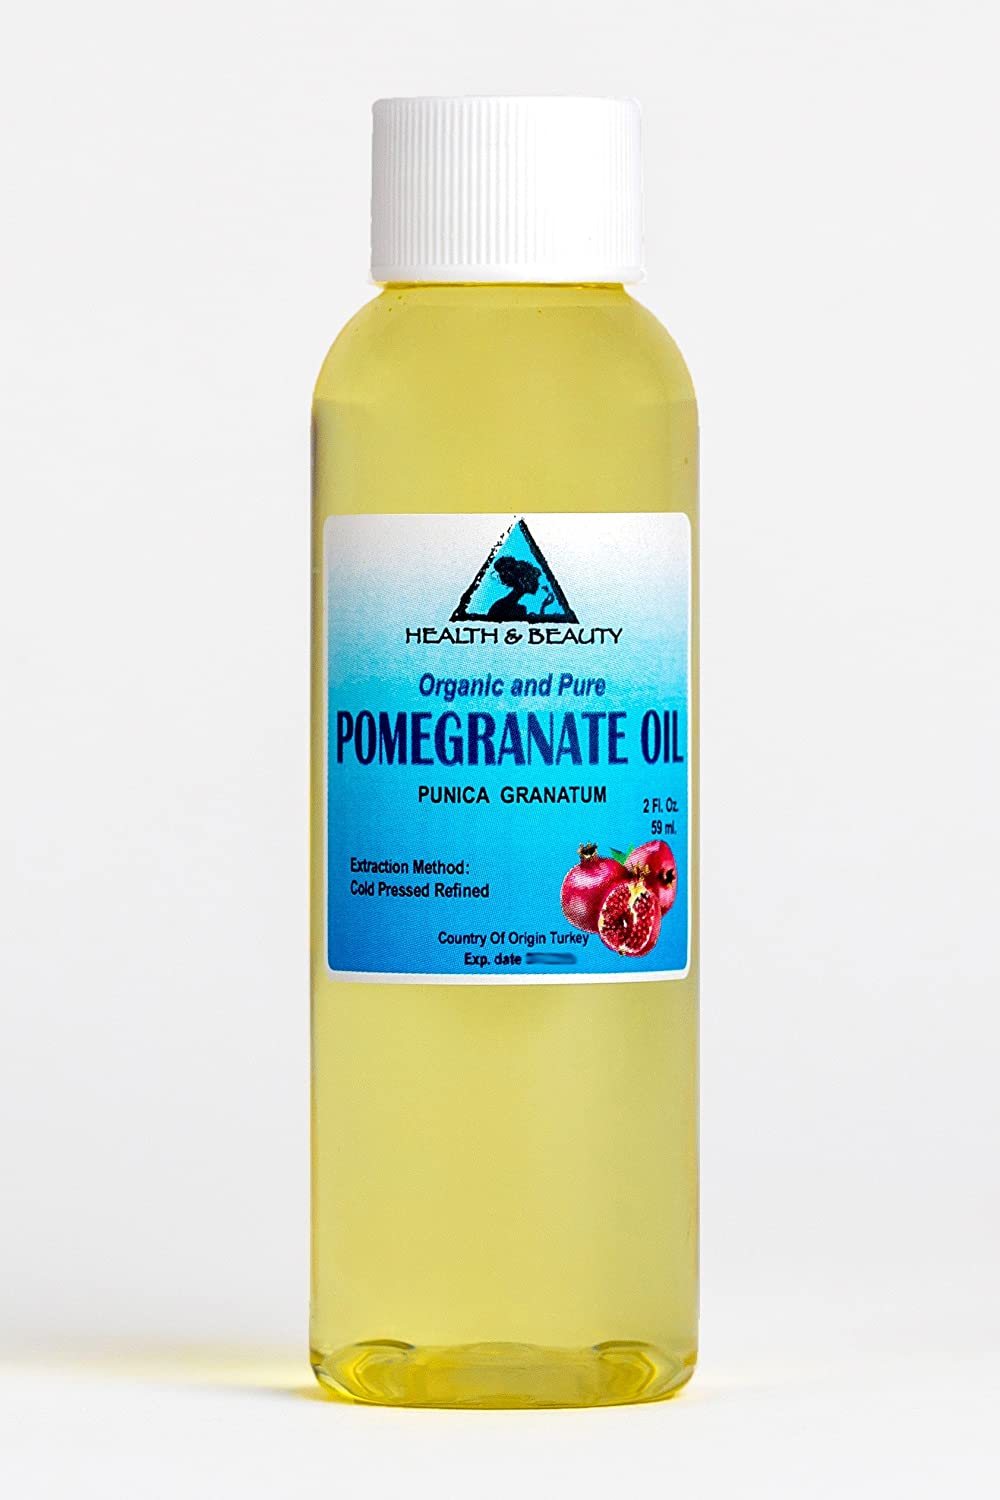 Pomegranate Seed Oil Refined Organic Carrier Cold Pressed Natural Fresh 100% Pure 2 oz, 59 ml H&B OILS CENTER Co.